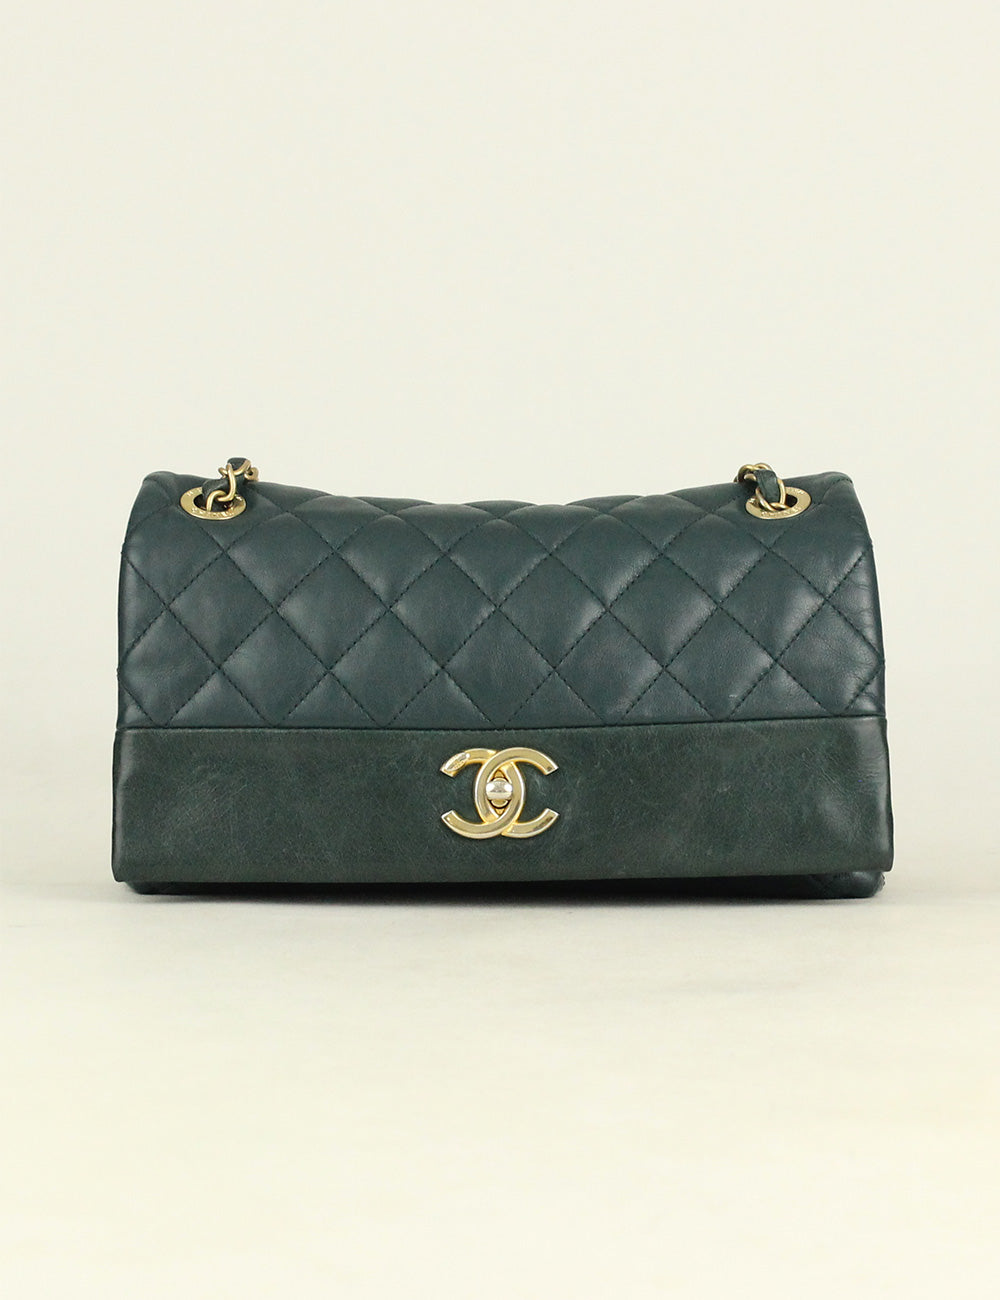 e21fc5f8a232 Chanel Quilted Soft Elegance Flap Bag – Brand Shop Treasures